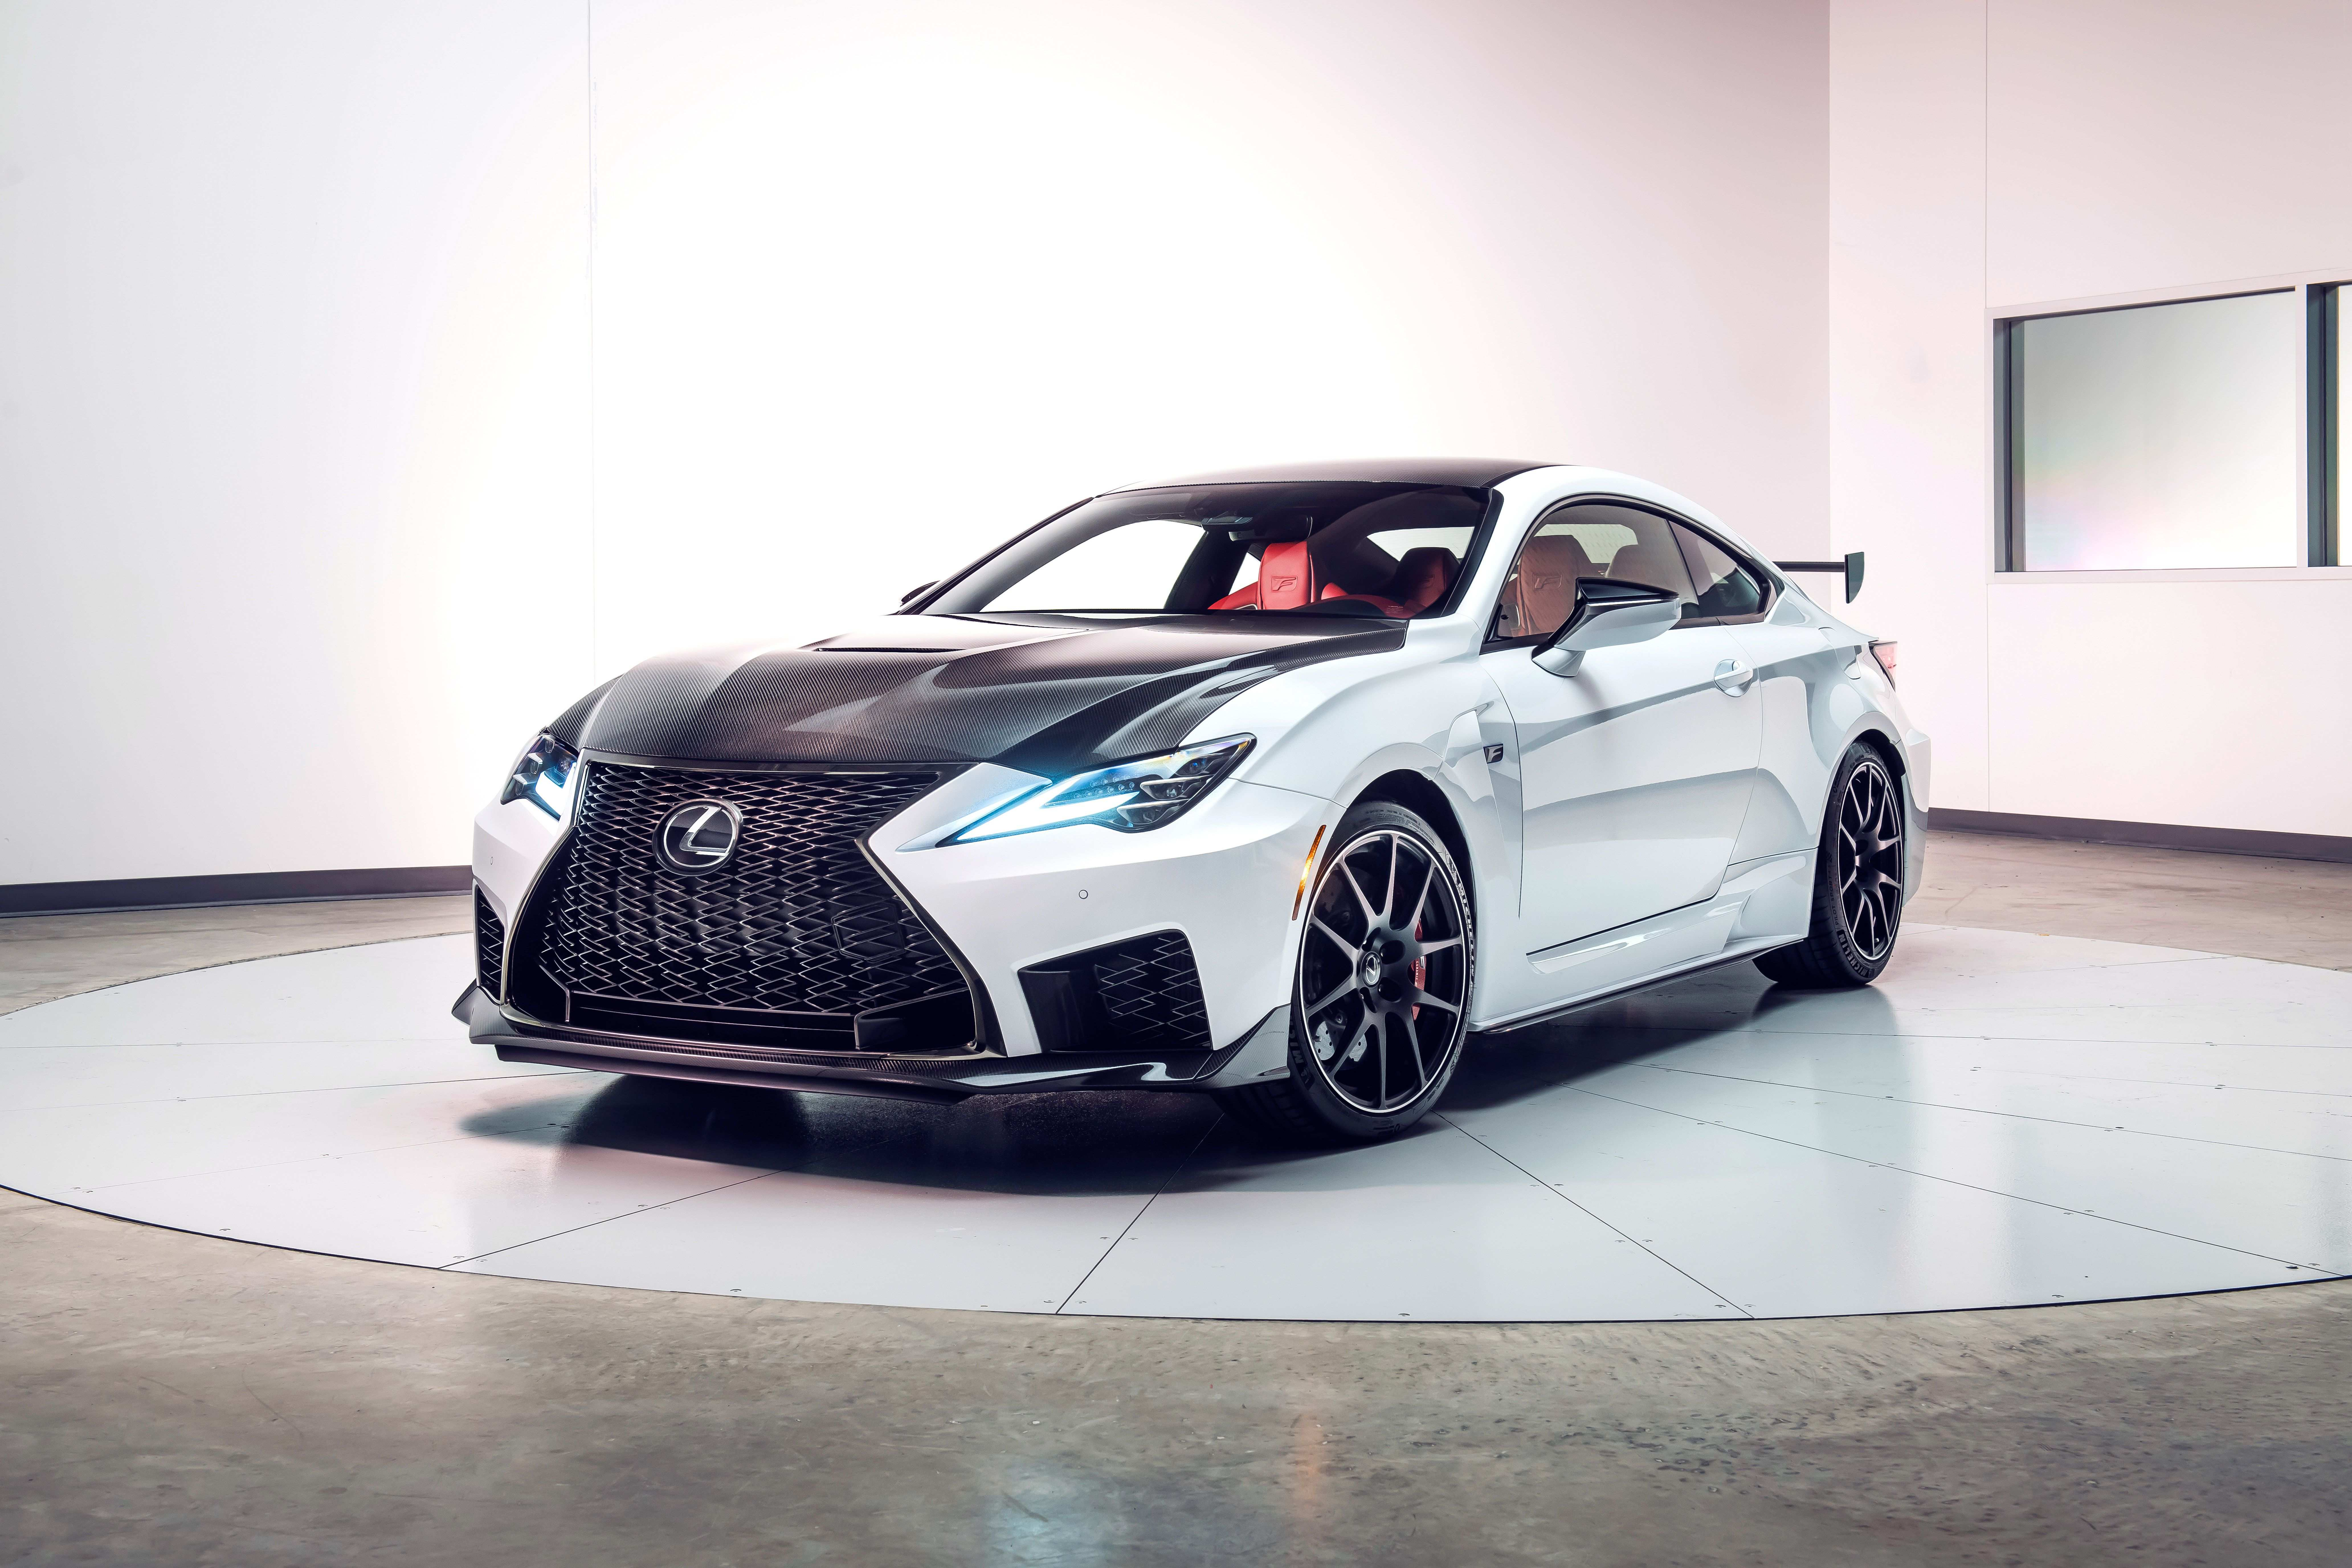 16 Concept of Lexus 2020 Rc Specs and Review with Lexus 2020 Rc